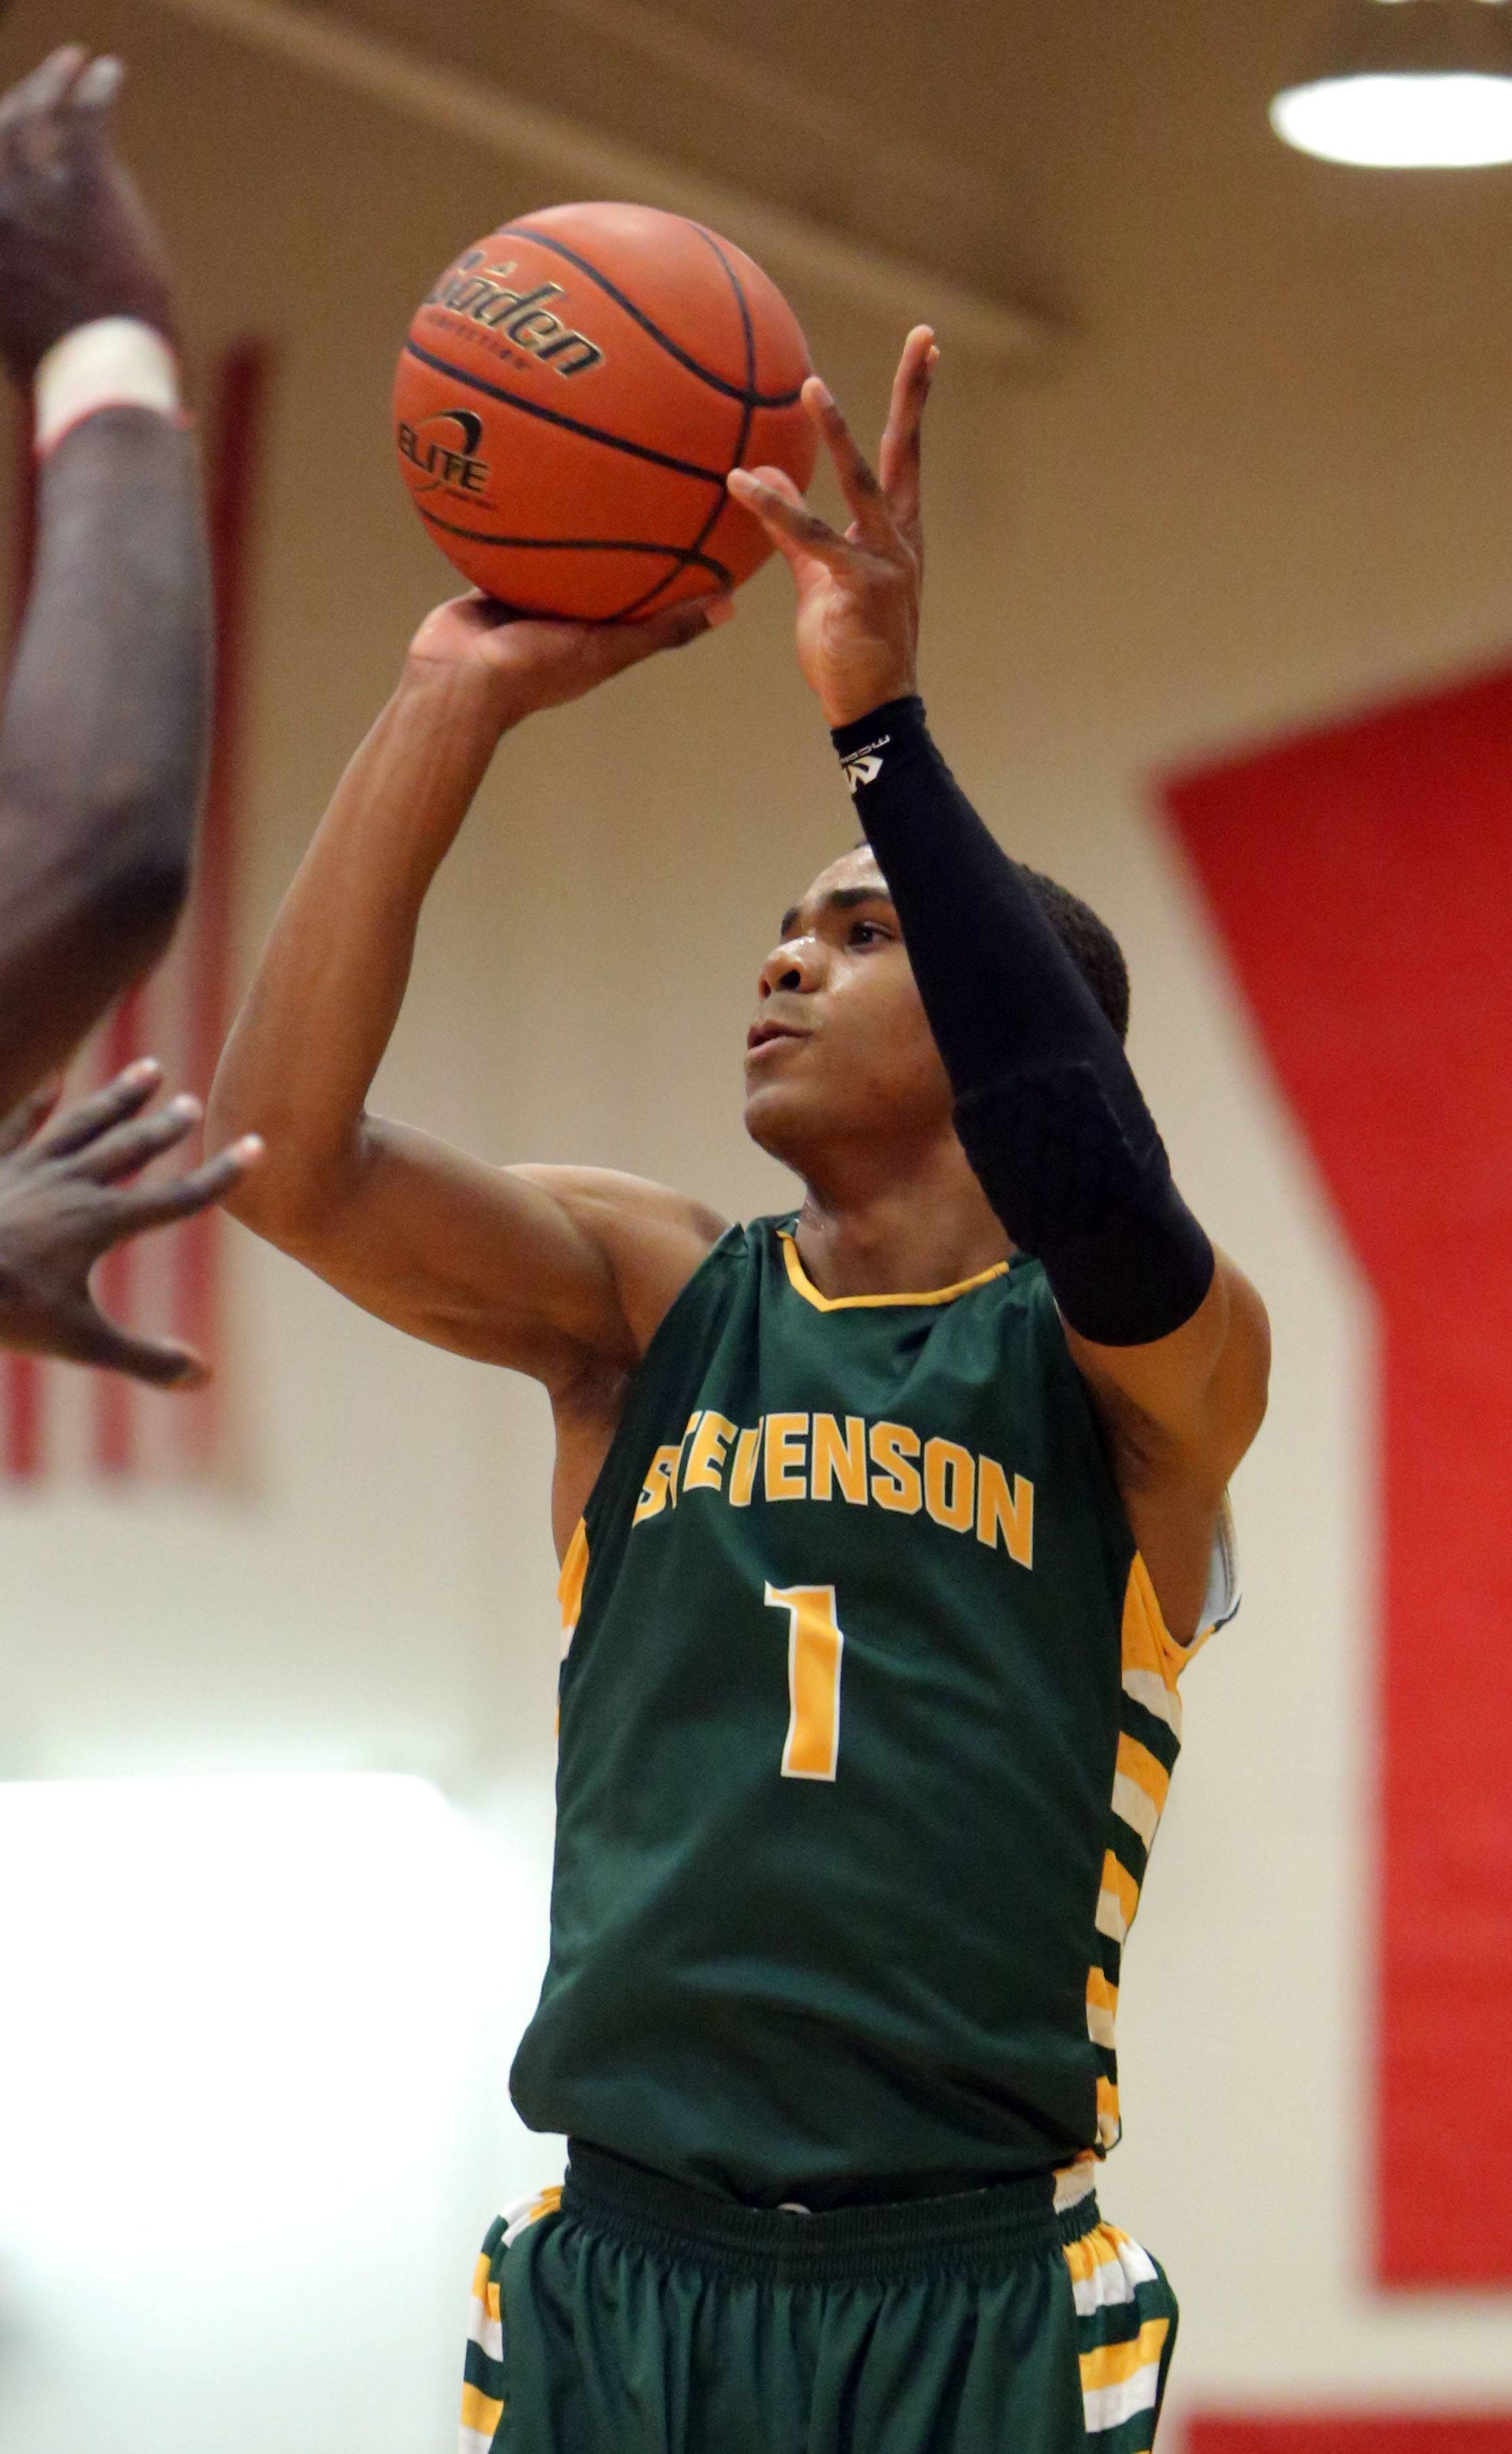 Stevenson's Connor Cashaw shoots during the Pats' victory over North Chicago in the North Suburban Conference championship game Wednesday night at North Chicago.